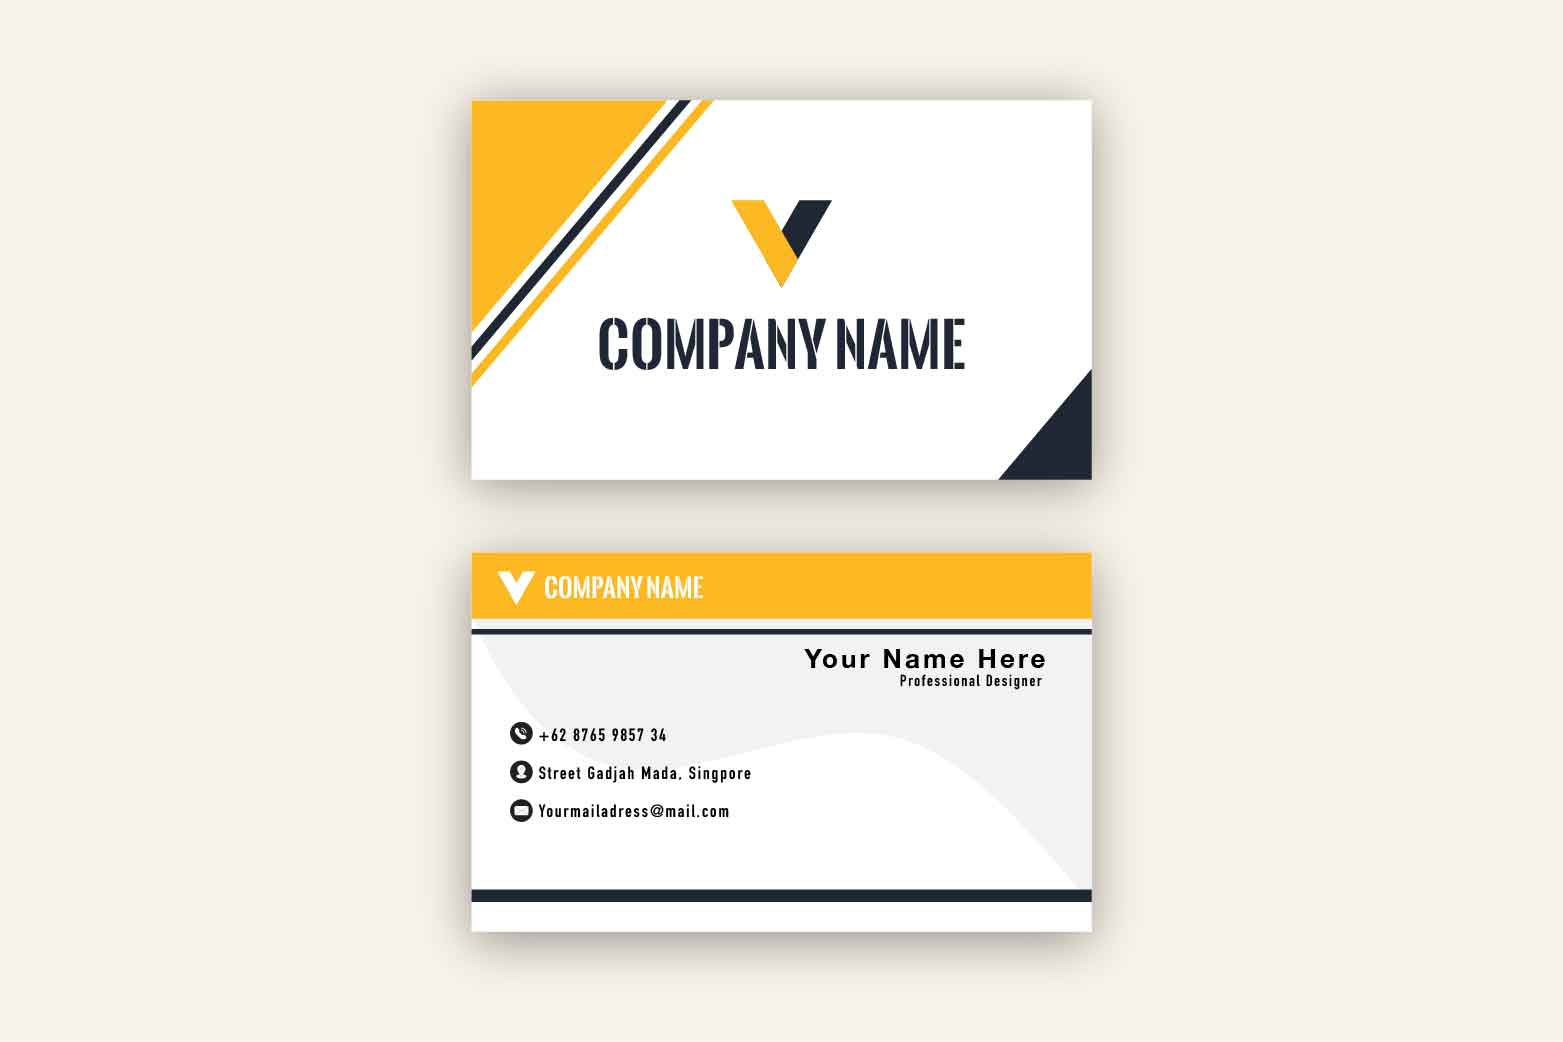 Elegant Business Card Template example image 2